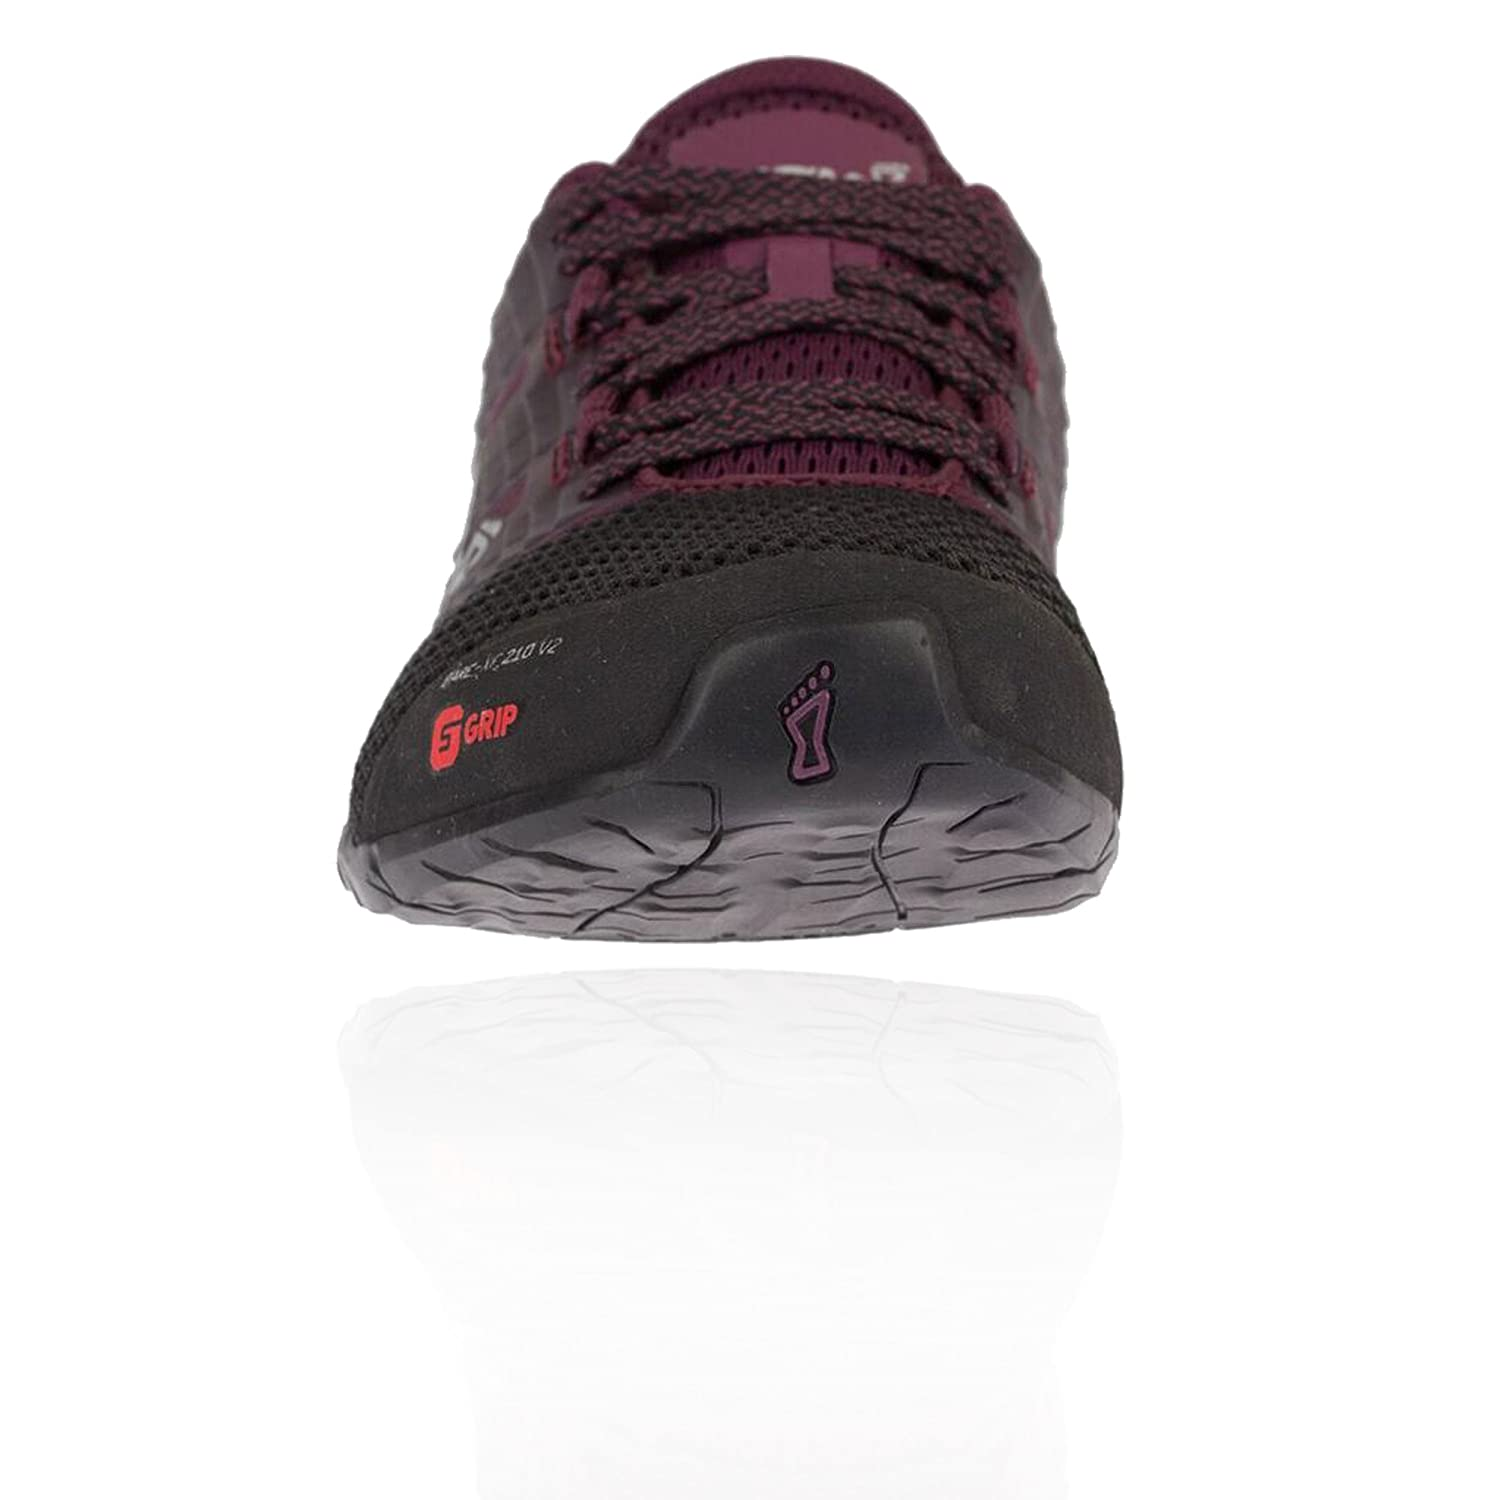 Inov-8 Women's Bare-XF 210 W V2 Sneaker B079Q4T9XP 8 W 210 UK|Black/Purple 243360